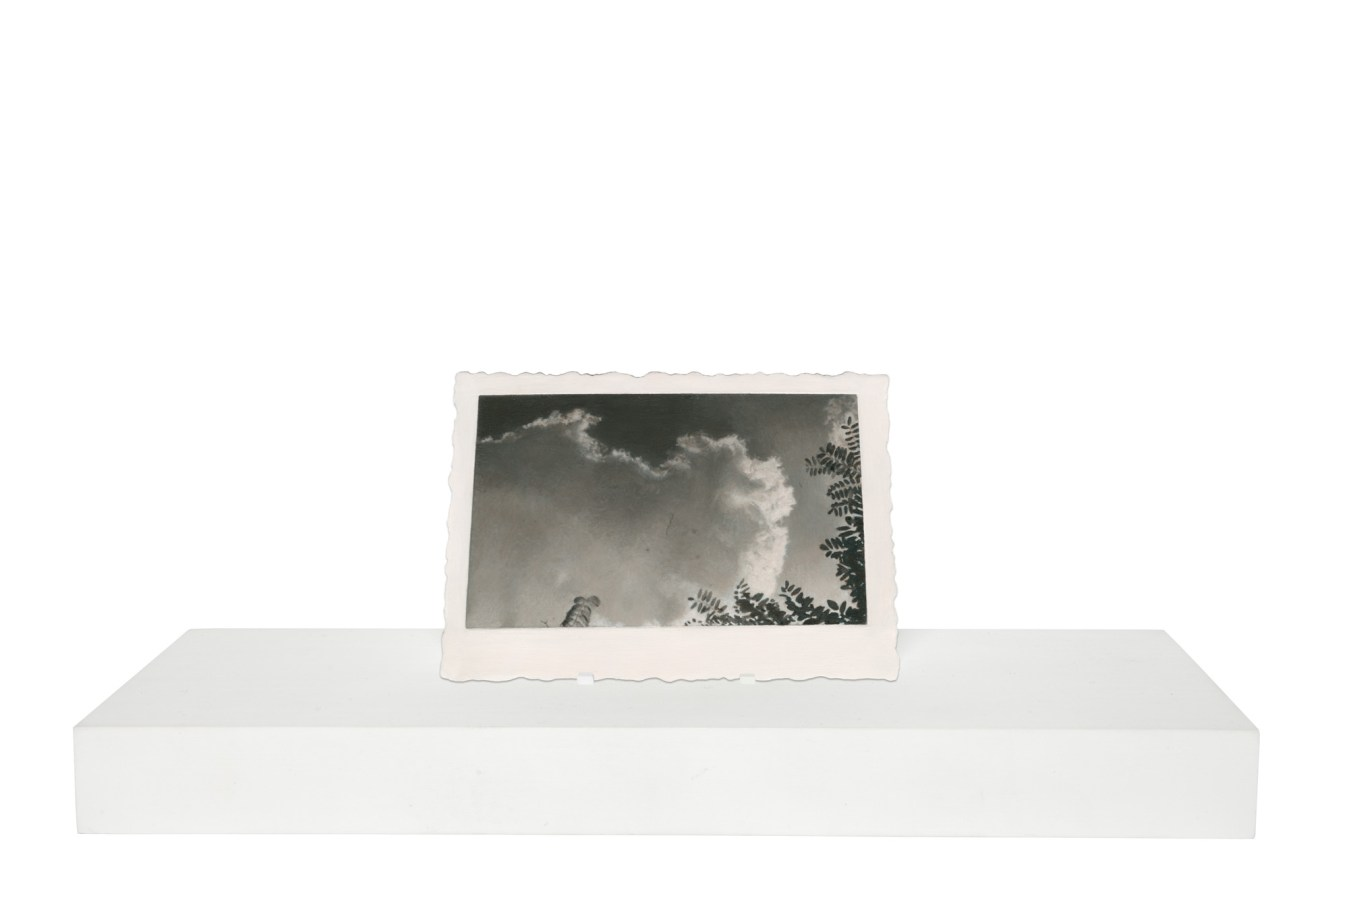 Painting of clouds and tips of tree branches on a wooden stand